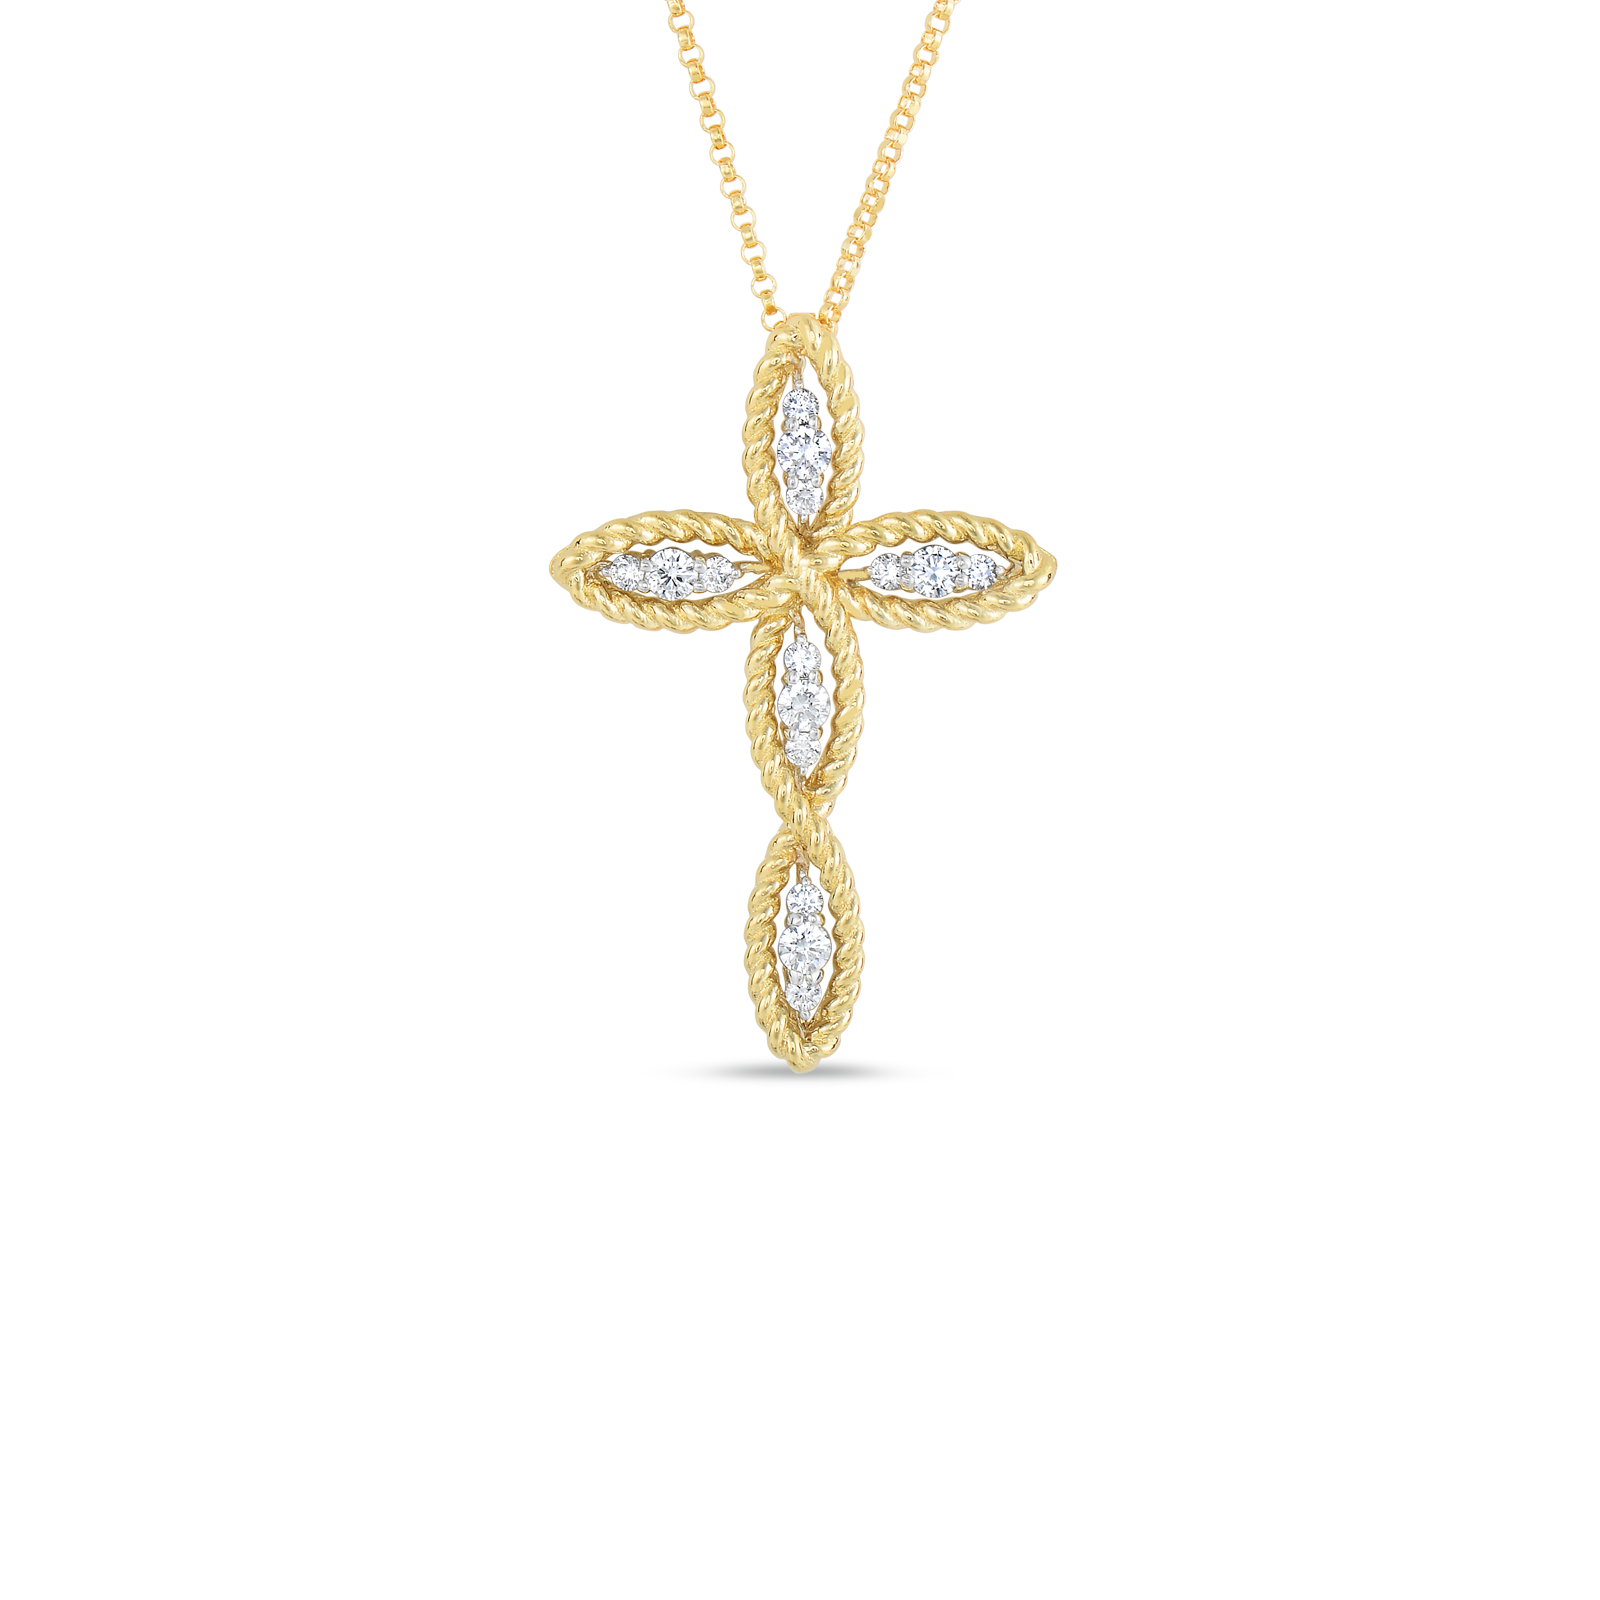 A gold cross with diamonds in the middle made by Roberto Coin Santa Fe Jewelry